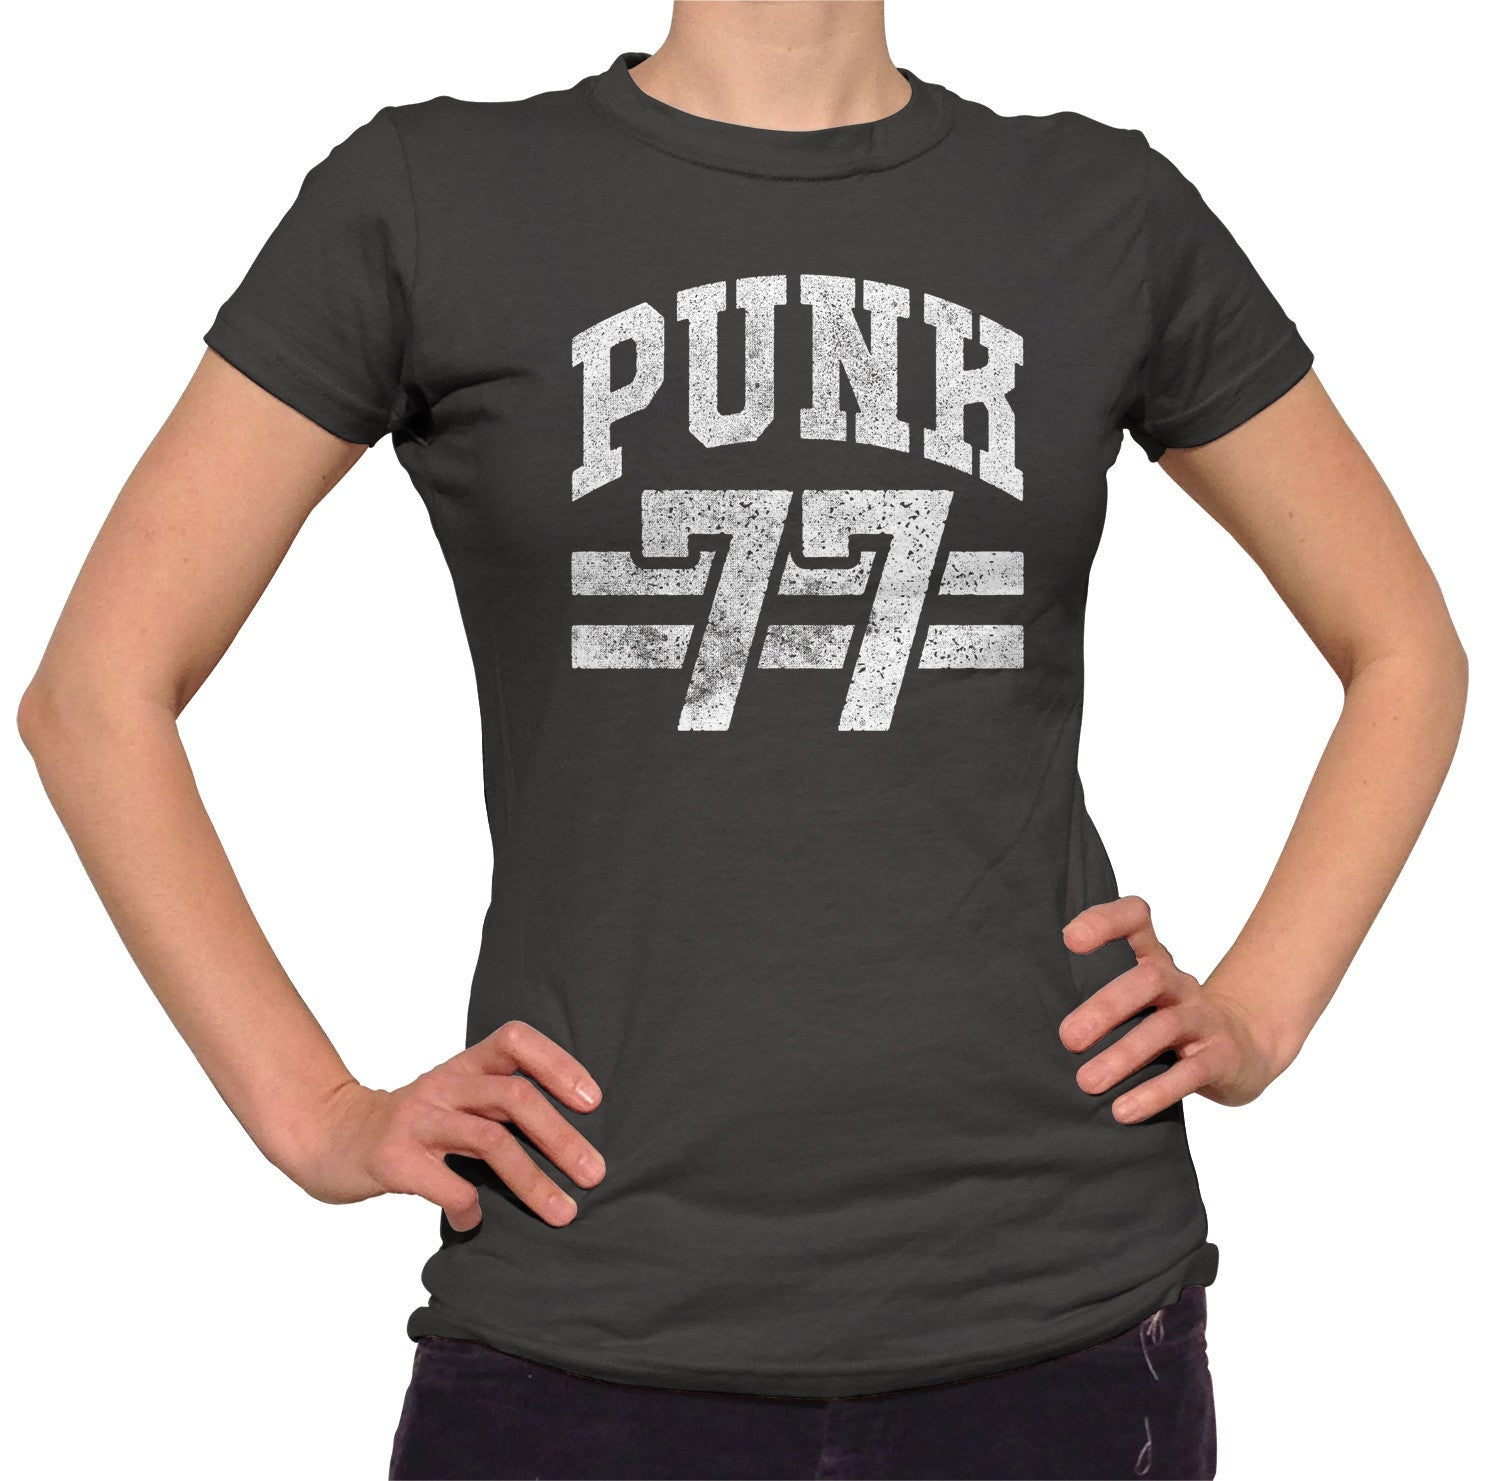 Women's Punk 77 T-Shirt - Alternative Music Punk Rock Grunge